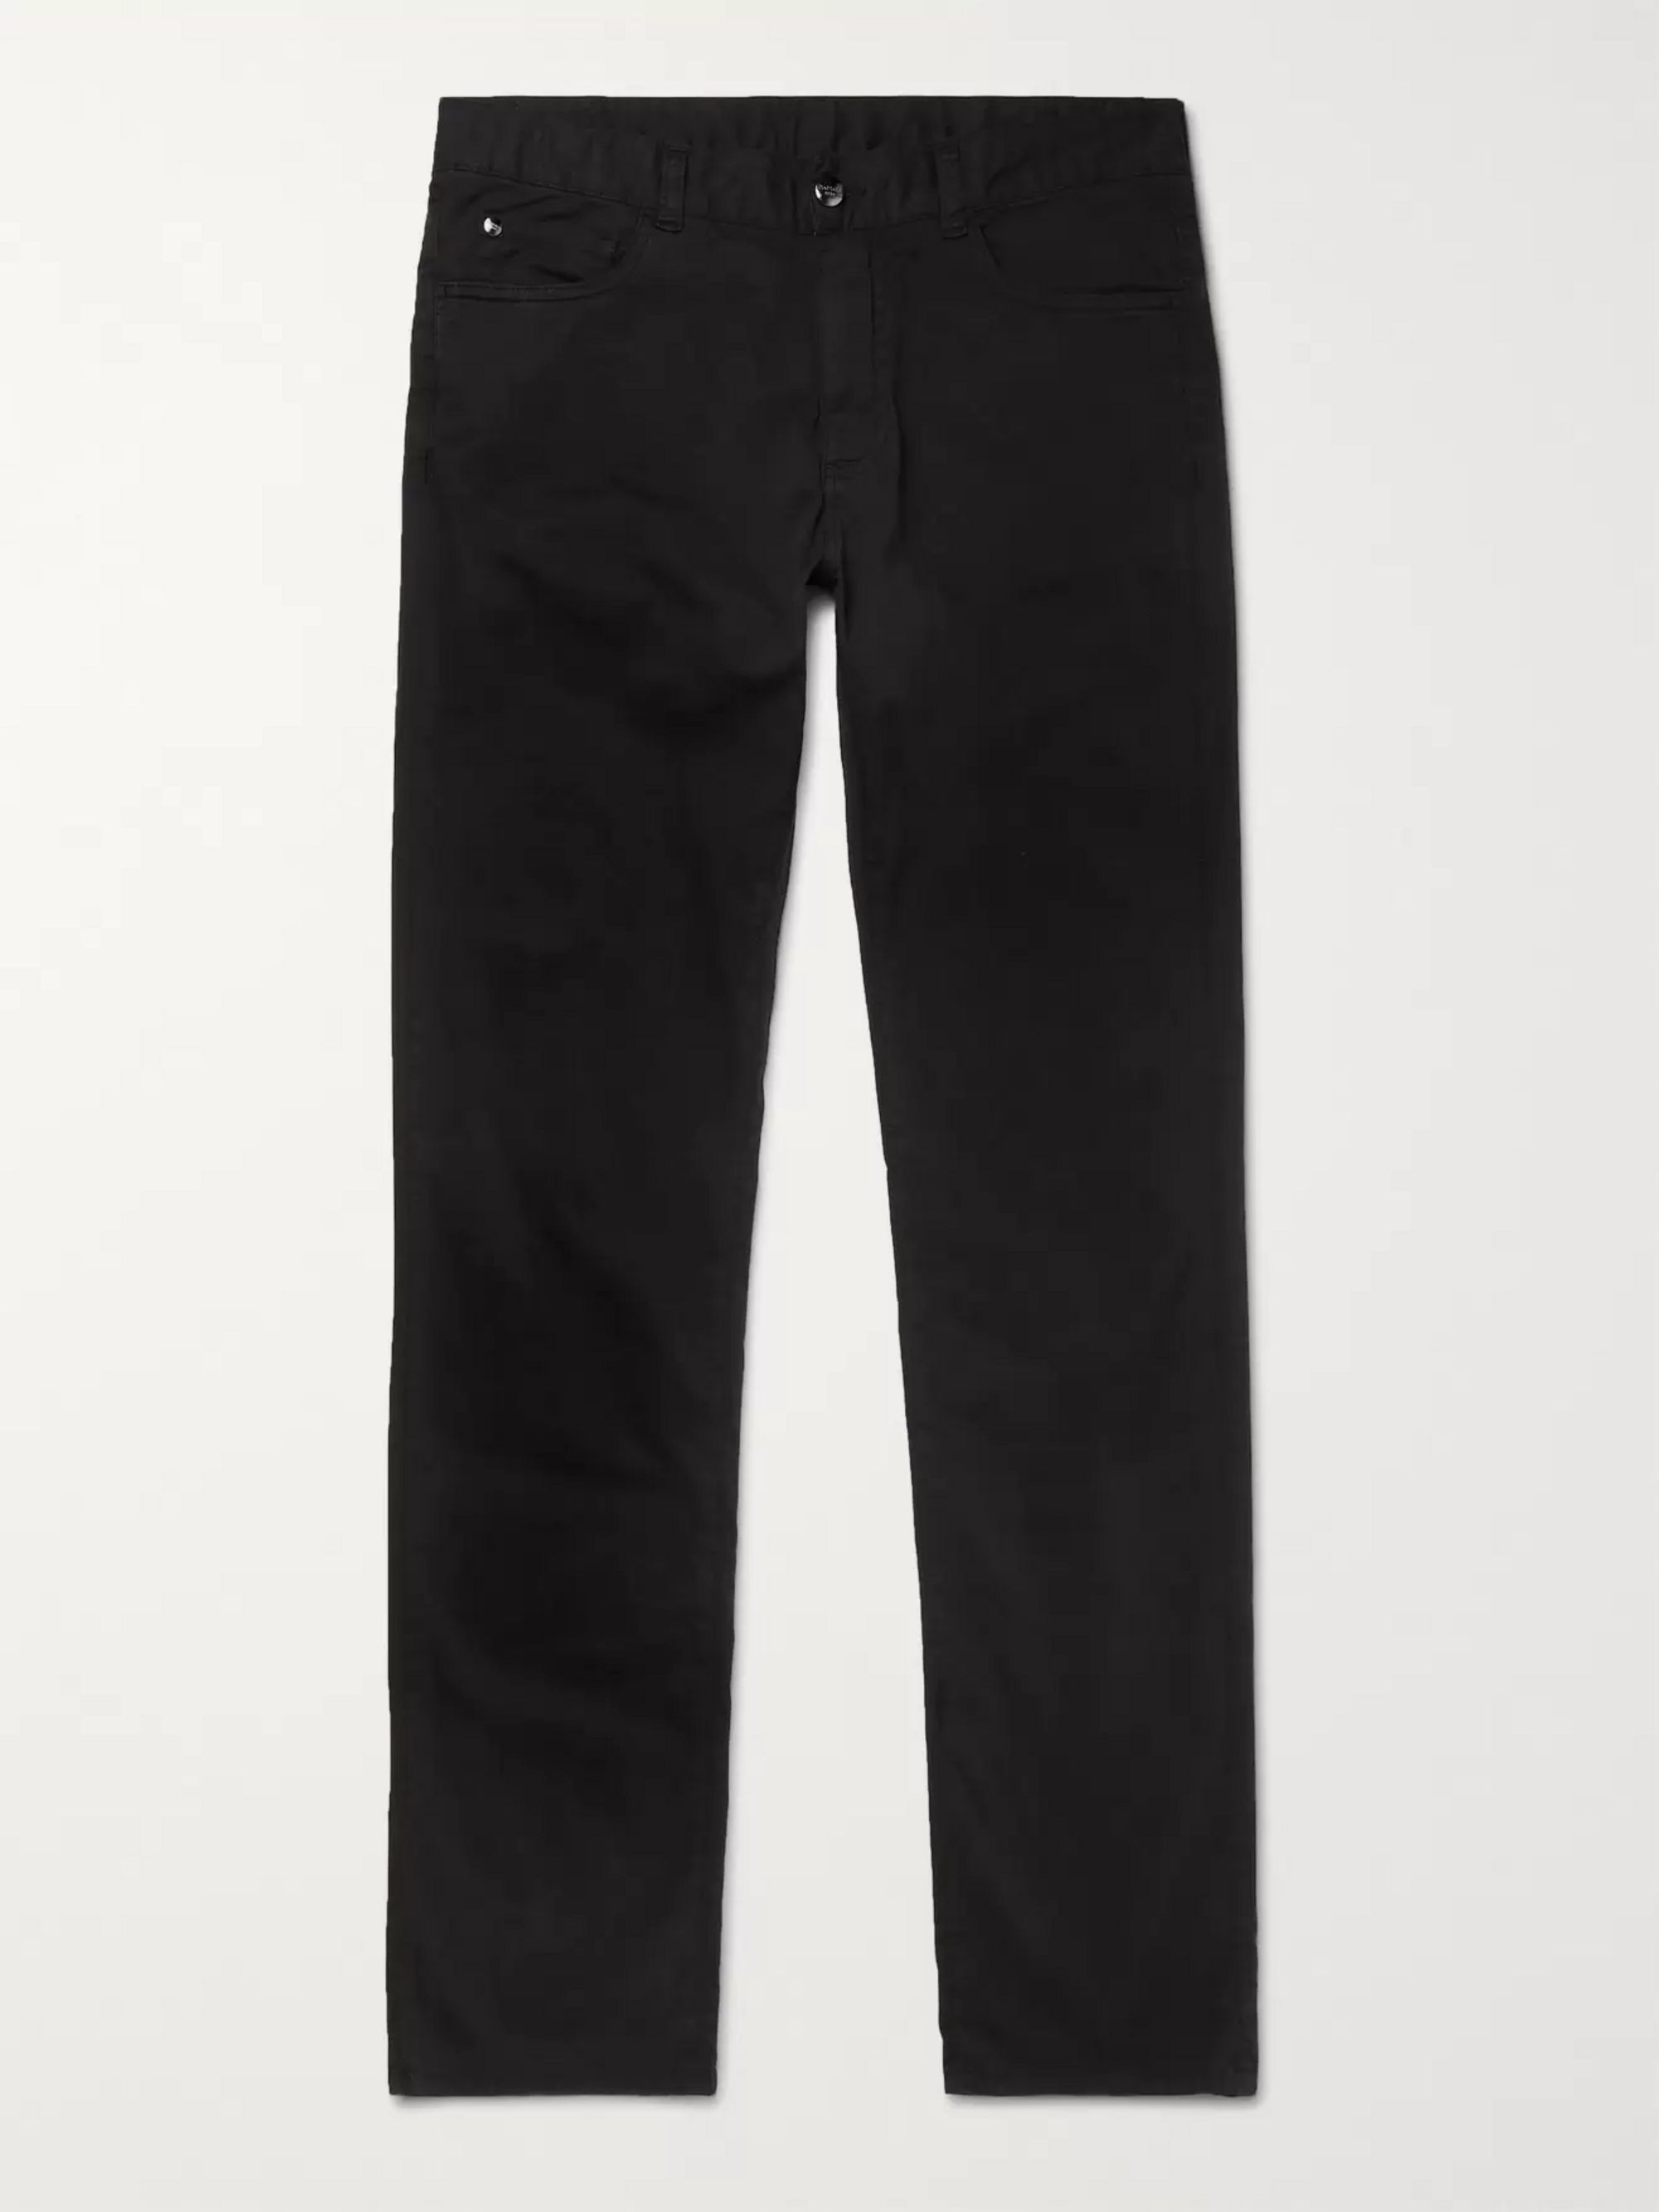 Canali Black Stretch-Cotton Twill Trousers